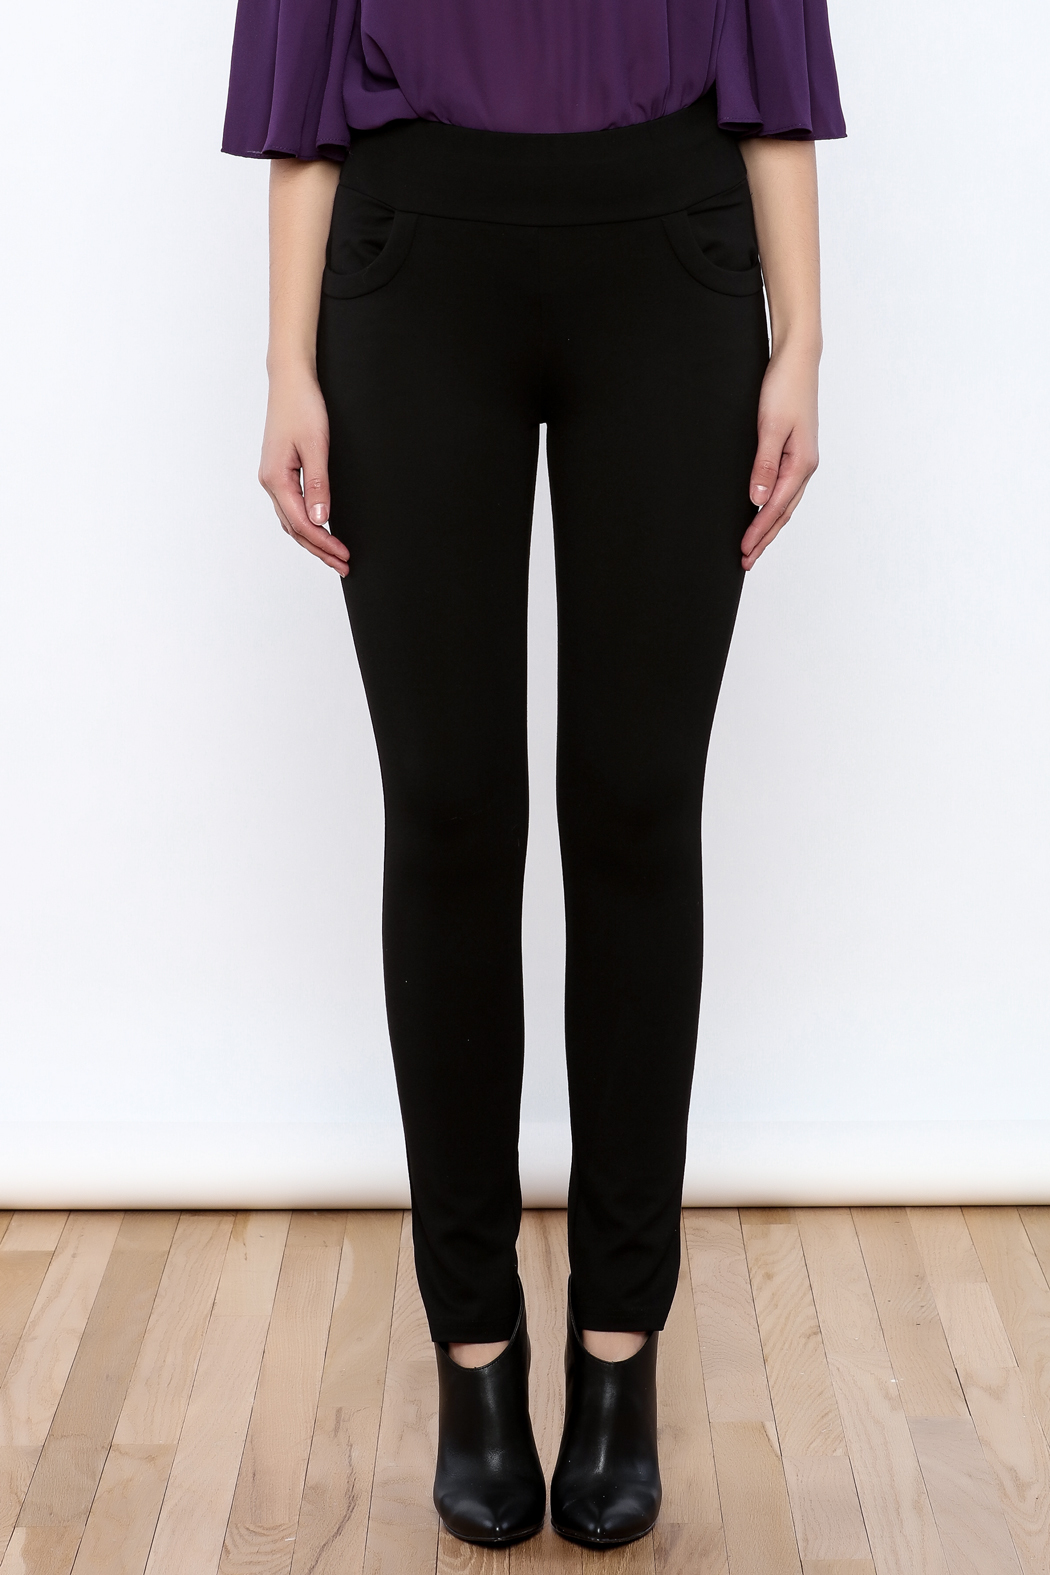 Gracia Black Stretchable Pants - Side Cropped Image